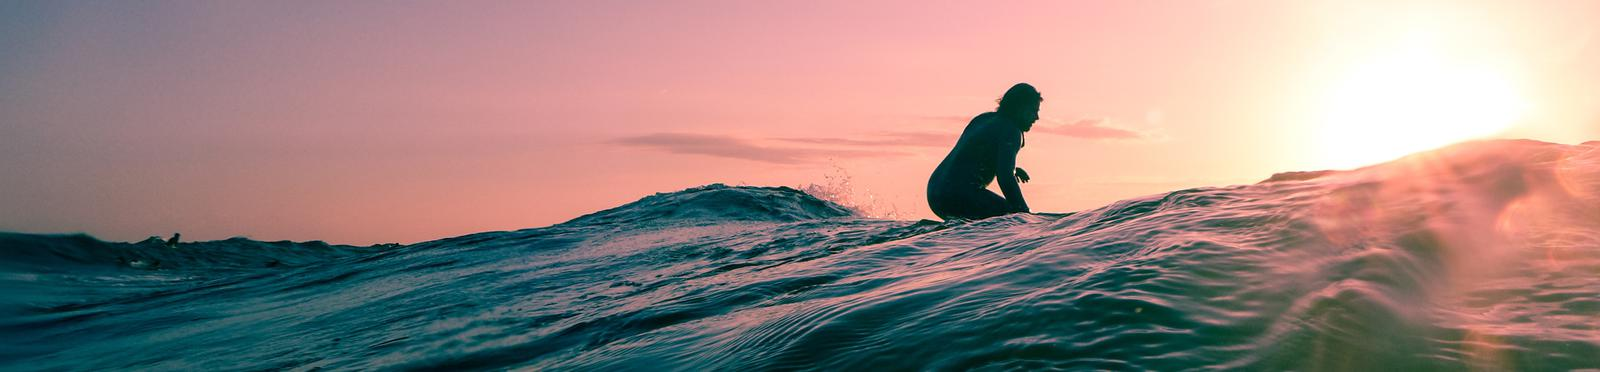 Man sitting on his board on the wave with a perfect pink sky